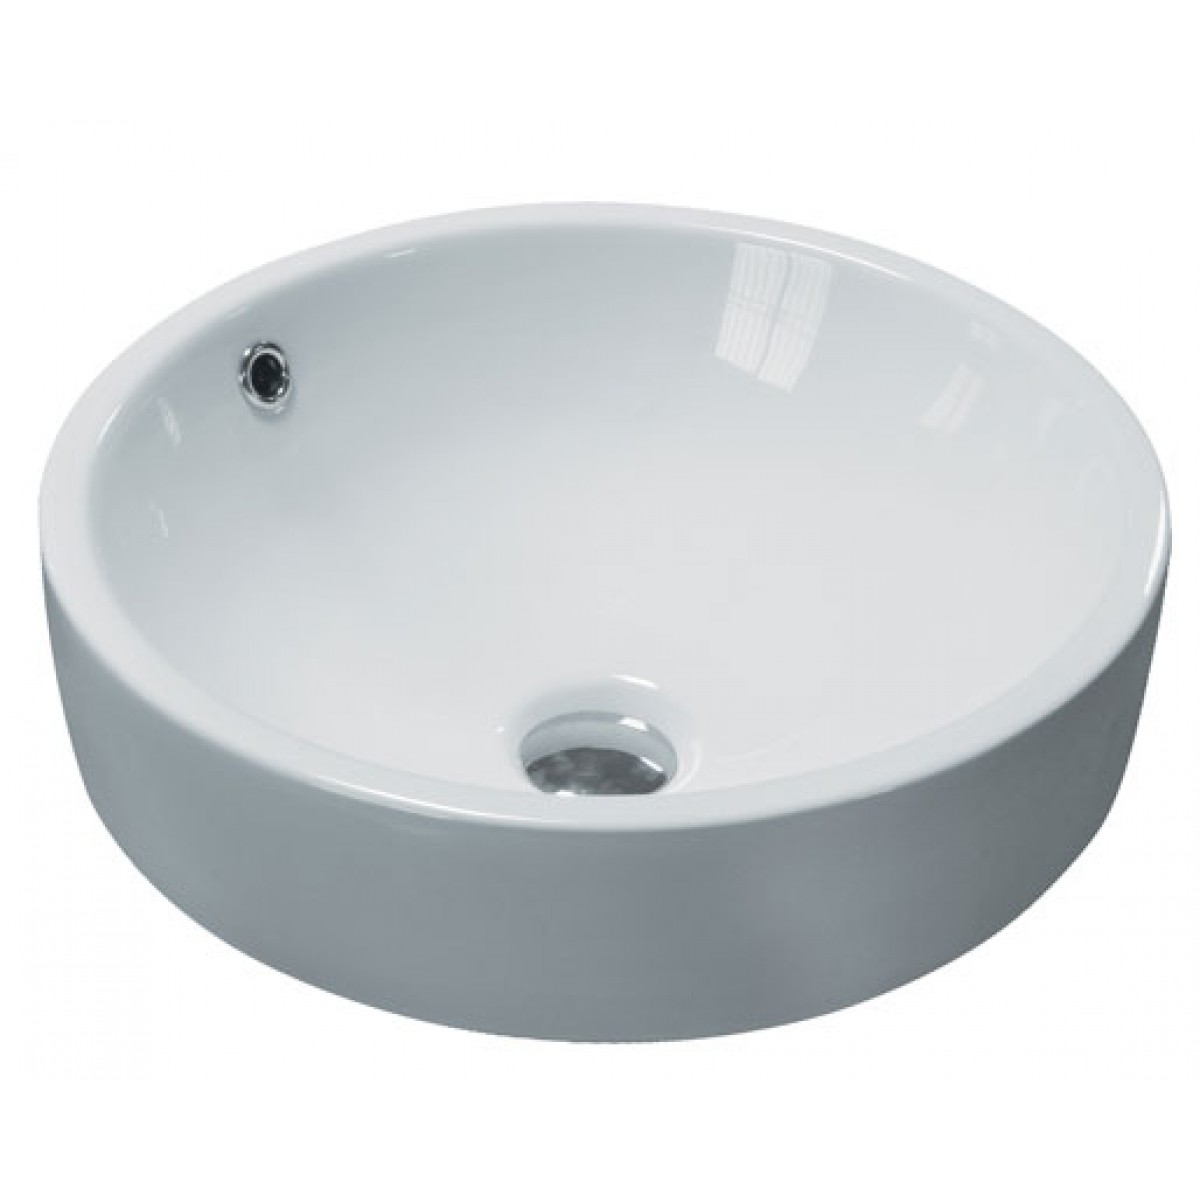 Round Porcelain Ceramic Countertop Bathroom Vessel Sink